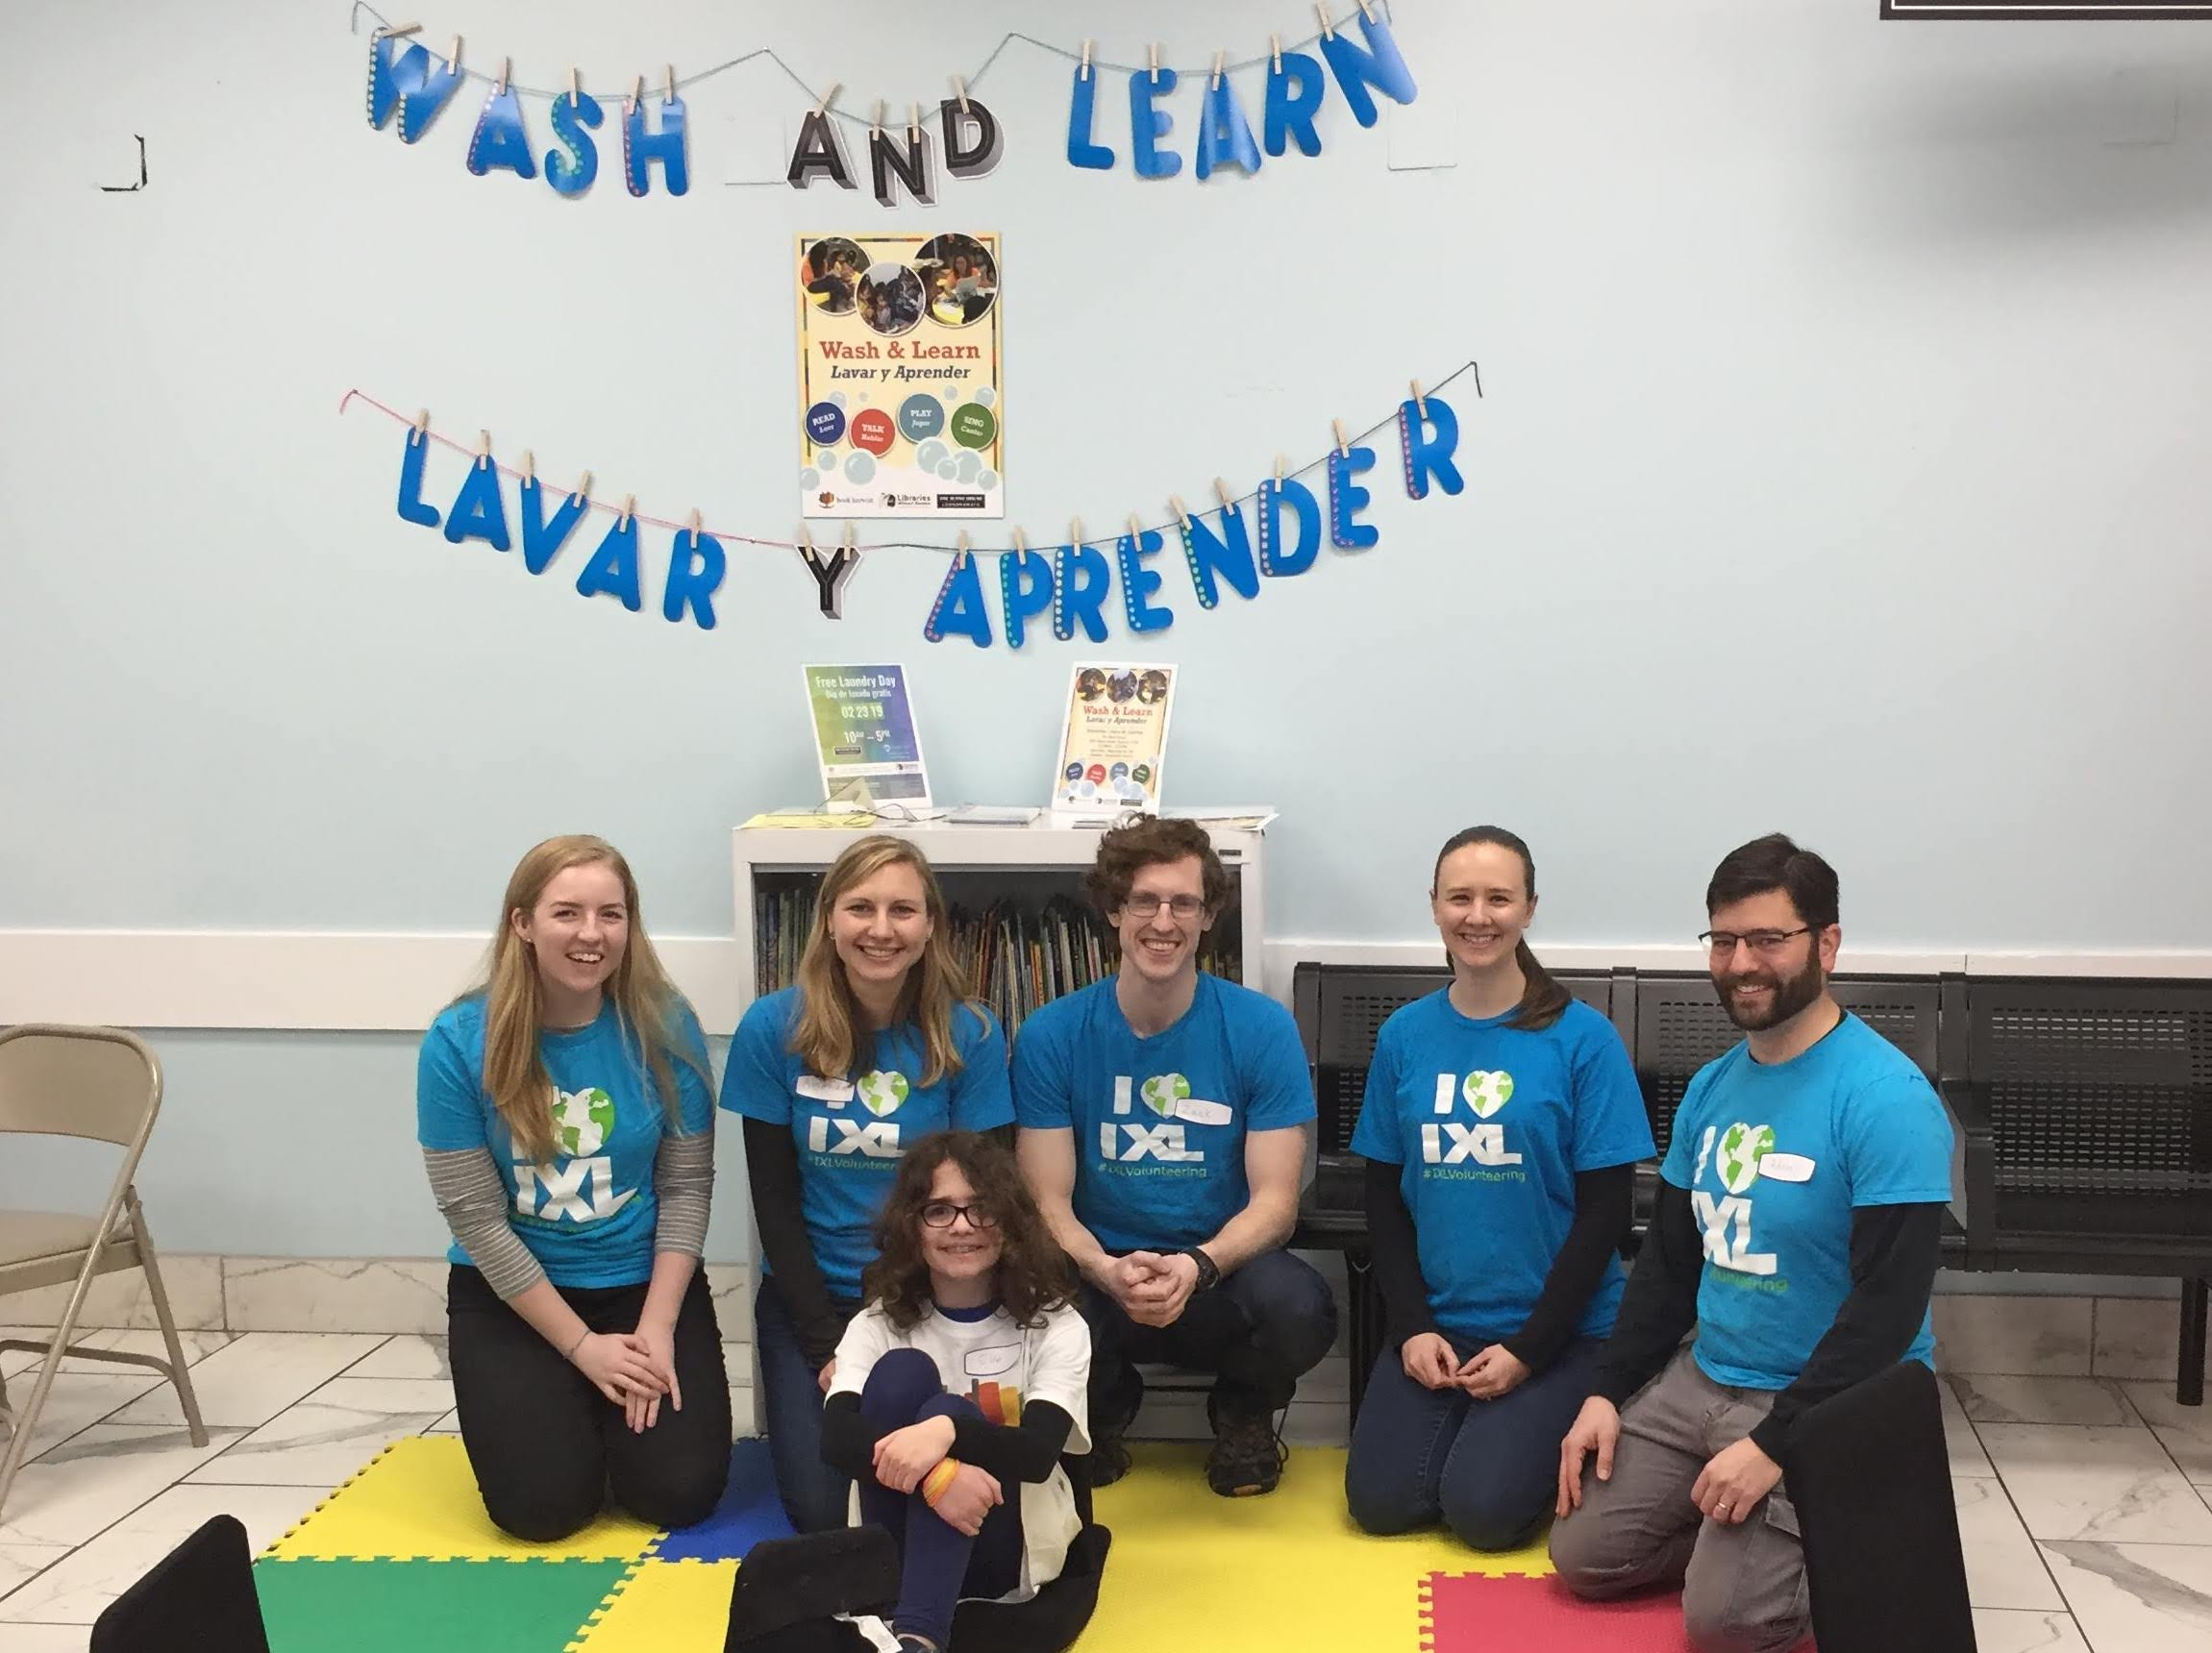 IXLers Have Loads of Fun Volunteering at Wash & Learn